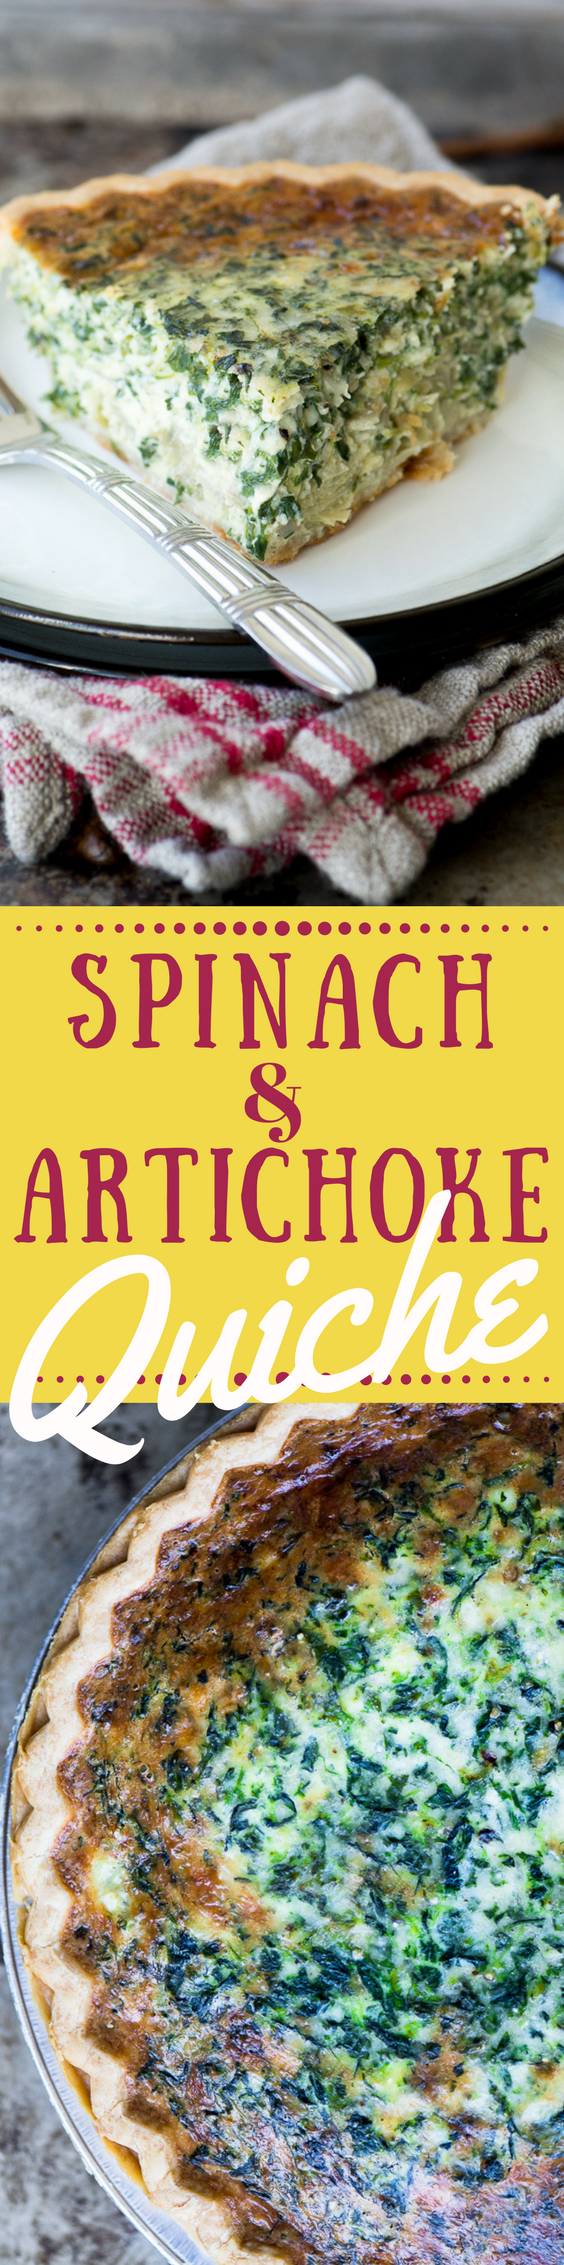 This Spinach and Artichoke Quiche ~ an easy meatless meal that proves that comfort food isn't all about meat and potatoes. #quiche #bestquiche #spinachquiche #quicherecipe #recipe #dinner #meatlessMonday #vegetarian #pie